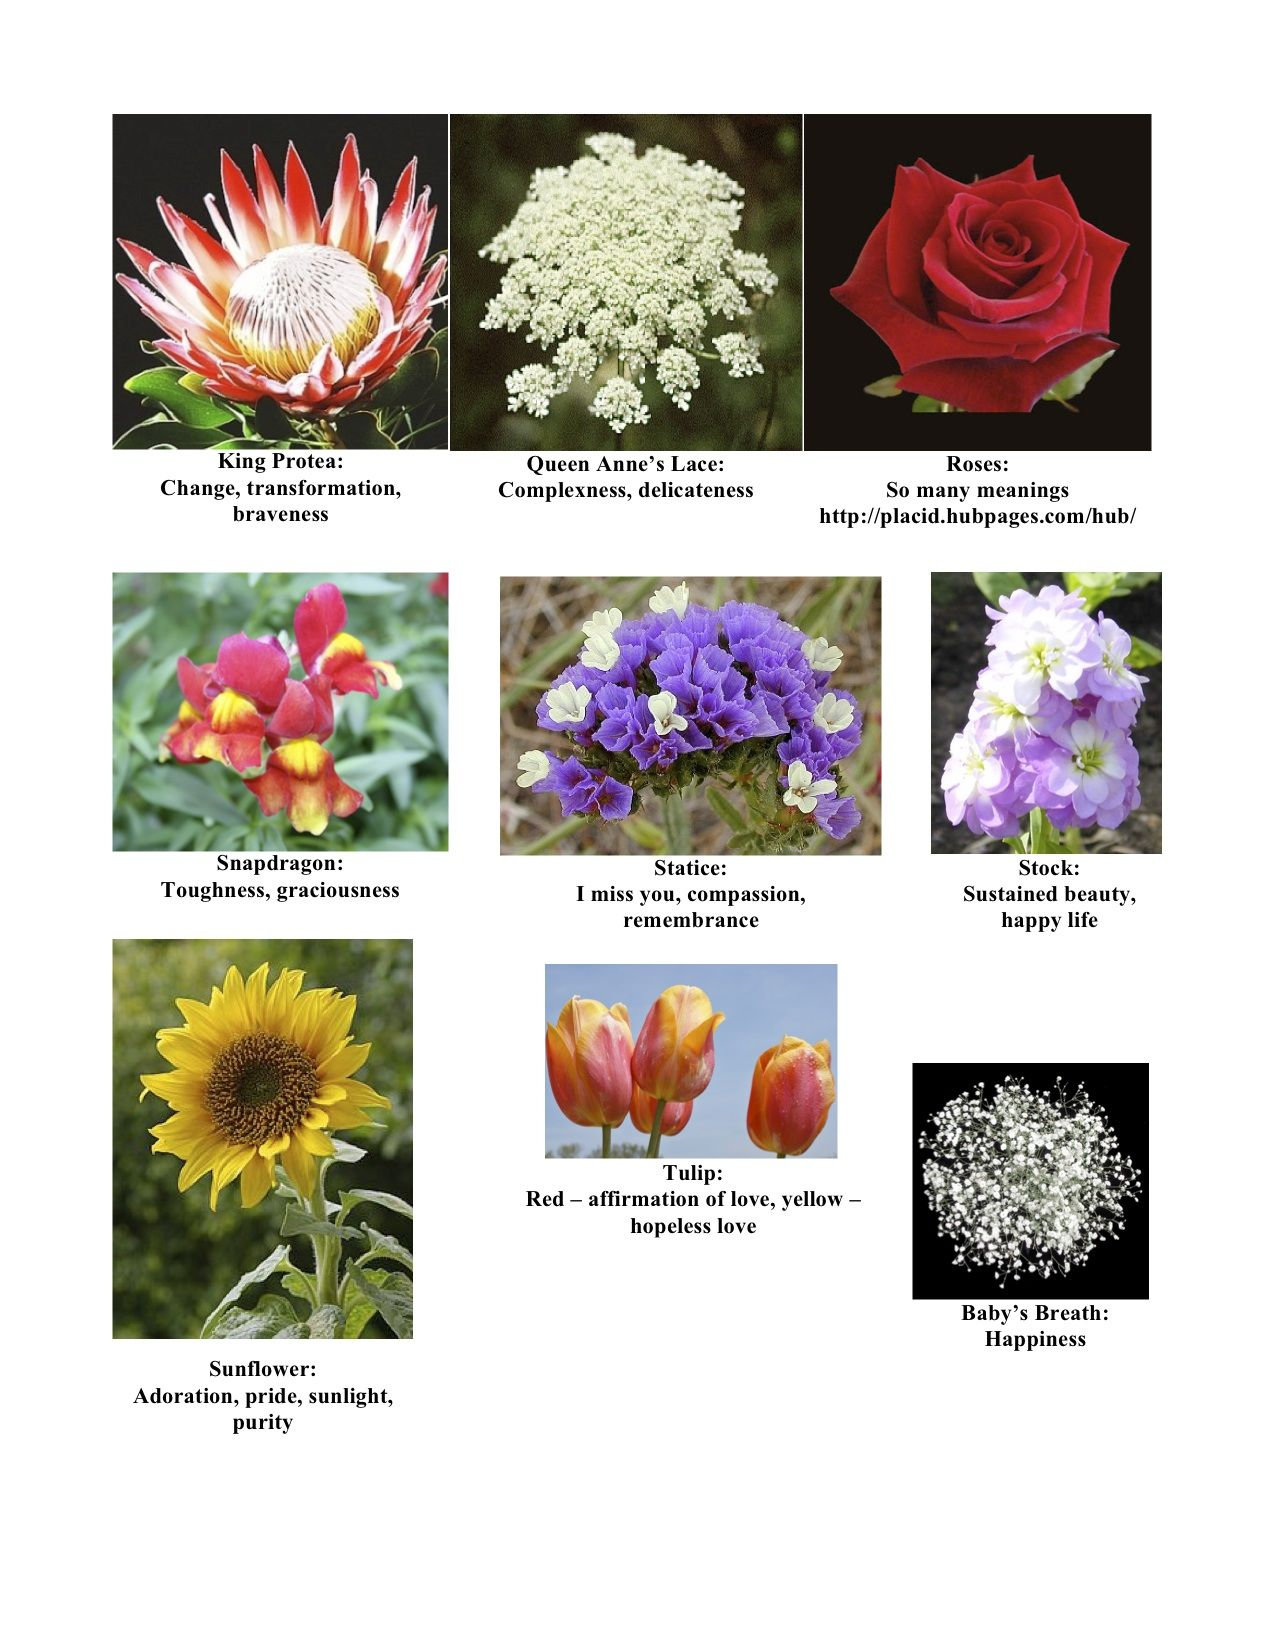 Flowers and their meanings page 3 of 3 Resources